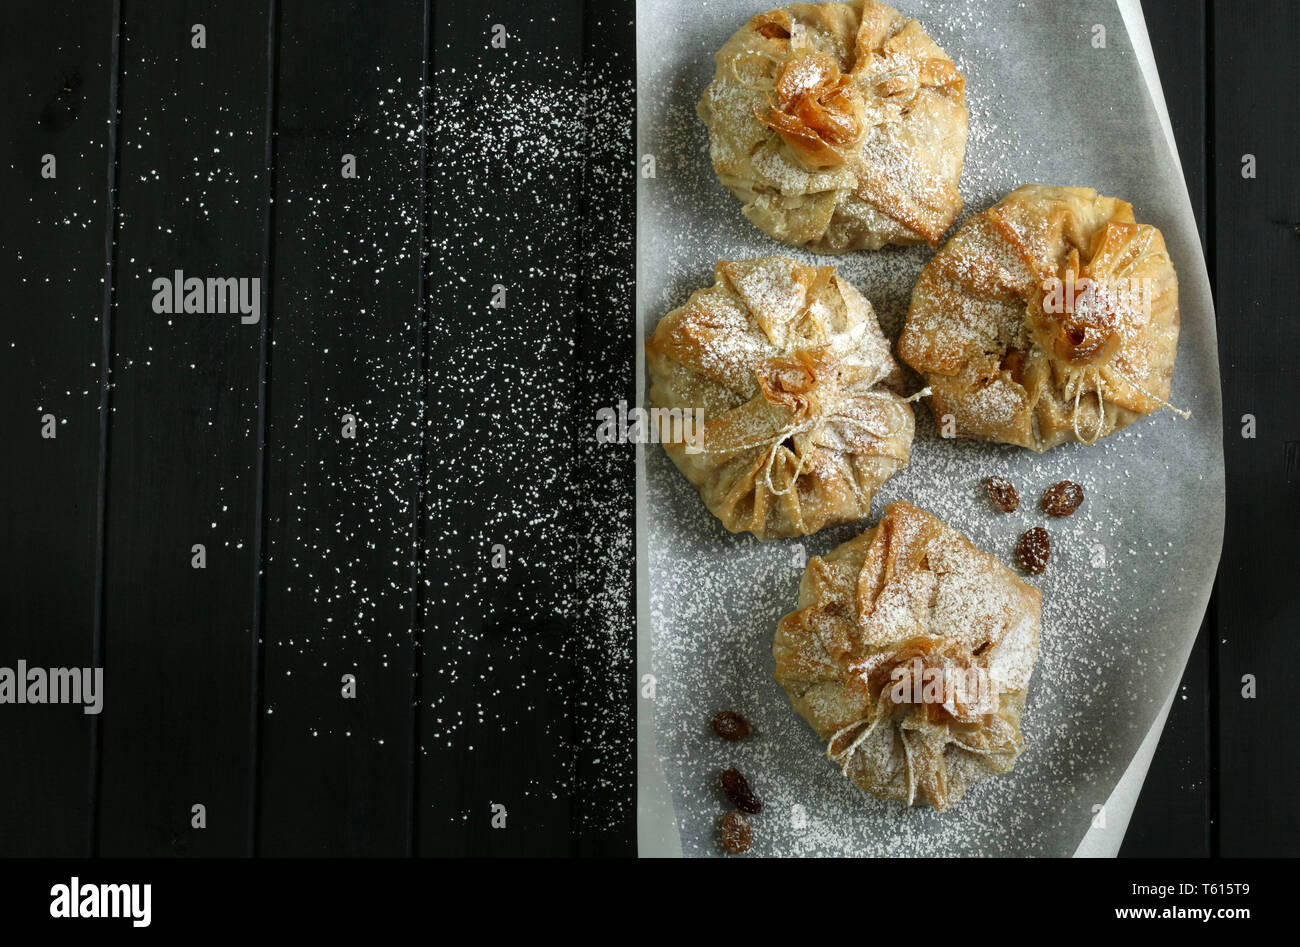 Phyllo pastry strudel with apple filling and sultana grapes, dusted with icing sugar Stock Photo